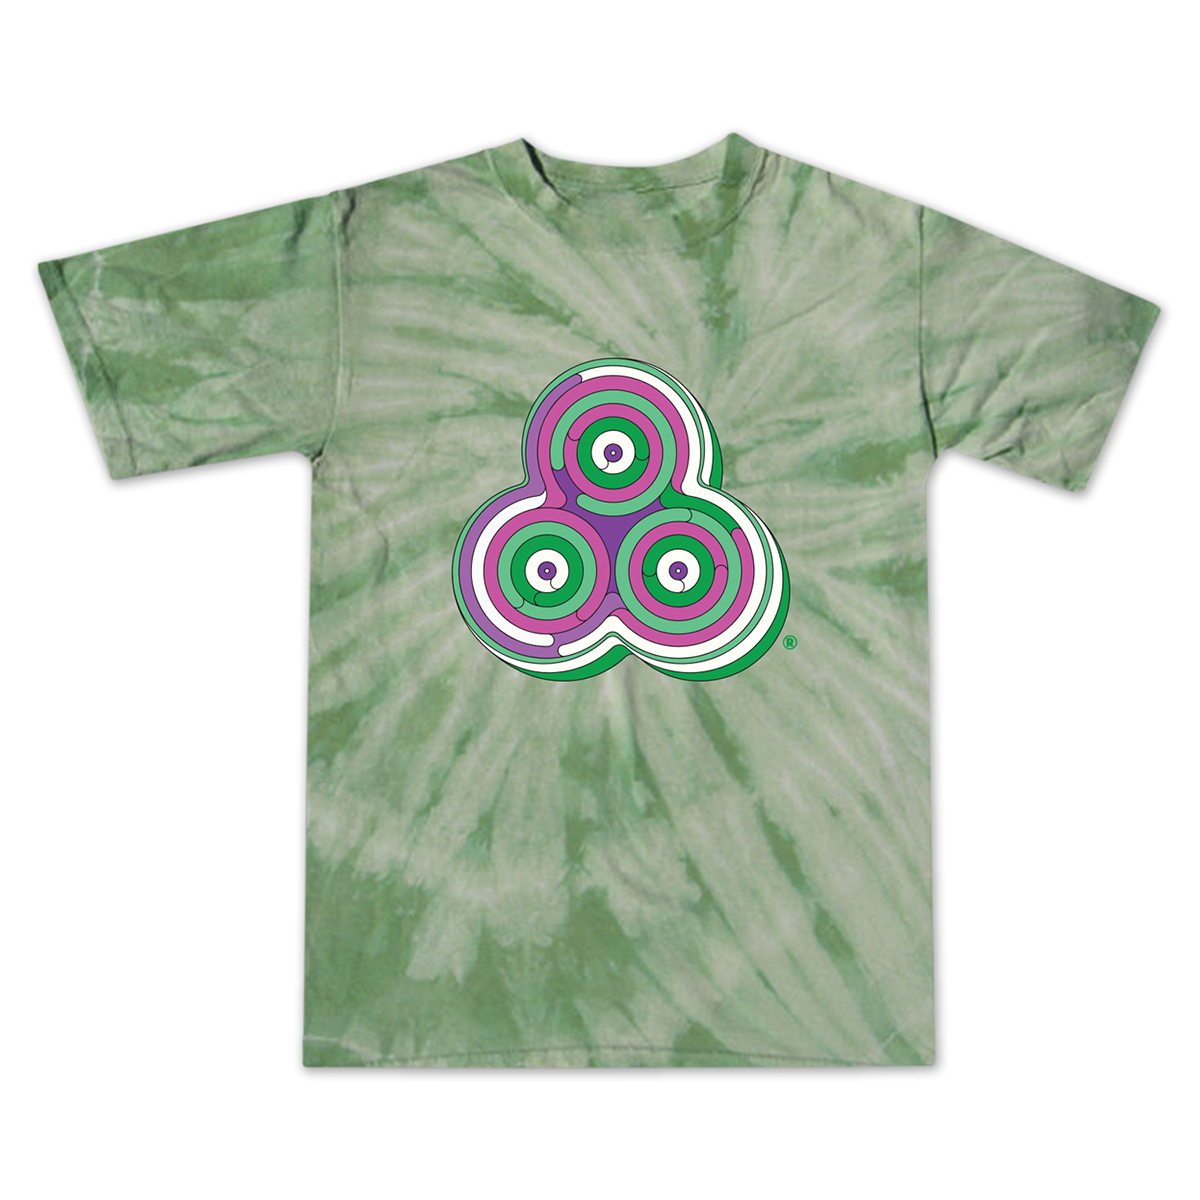 Bonnaroo 2016 Rings Tie-Dye T-Shirt